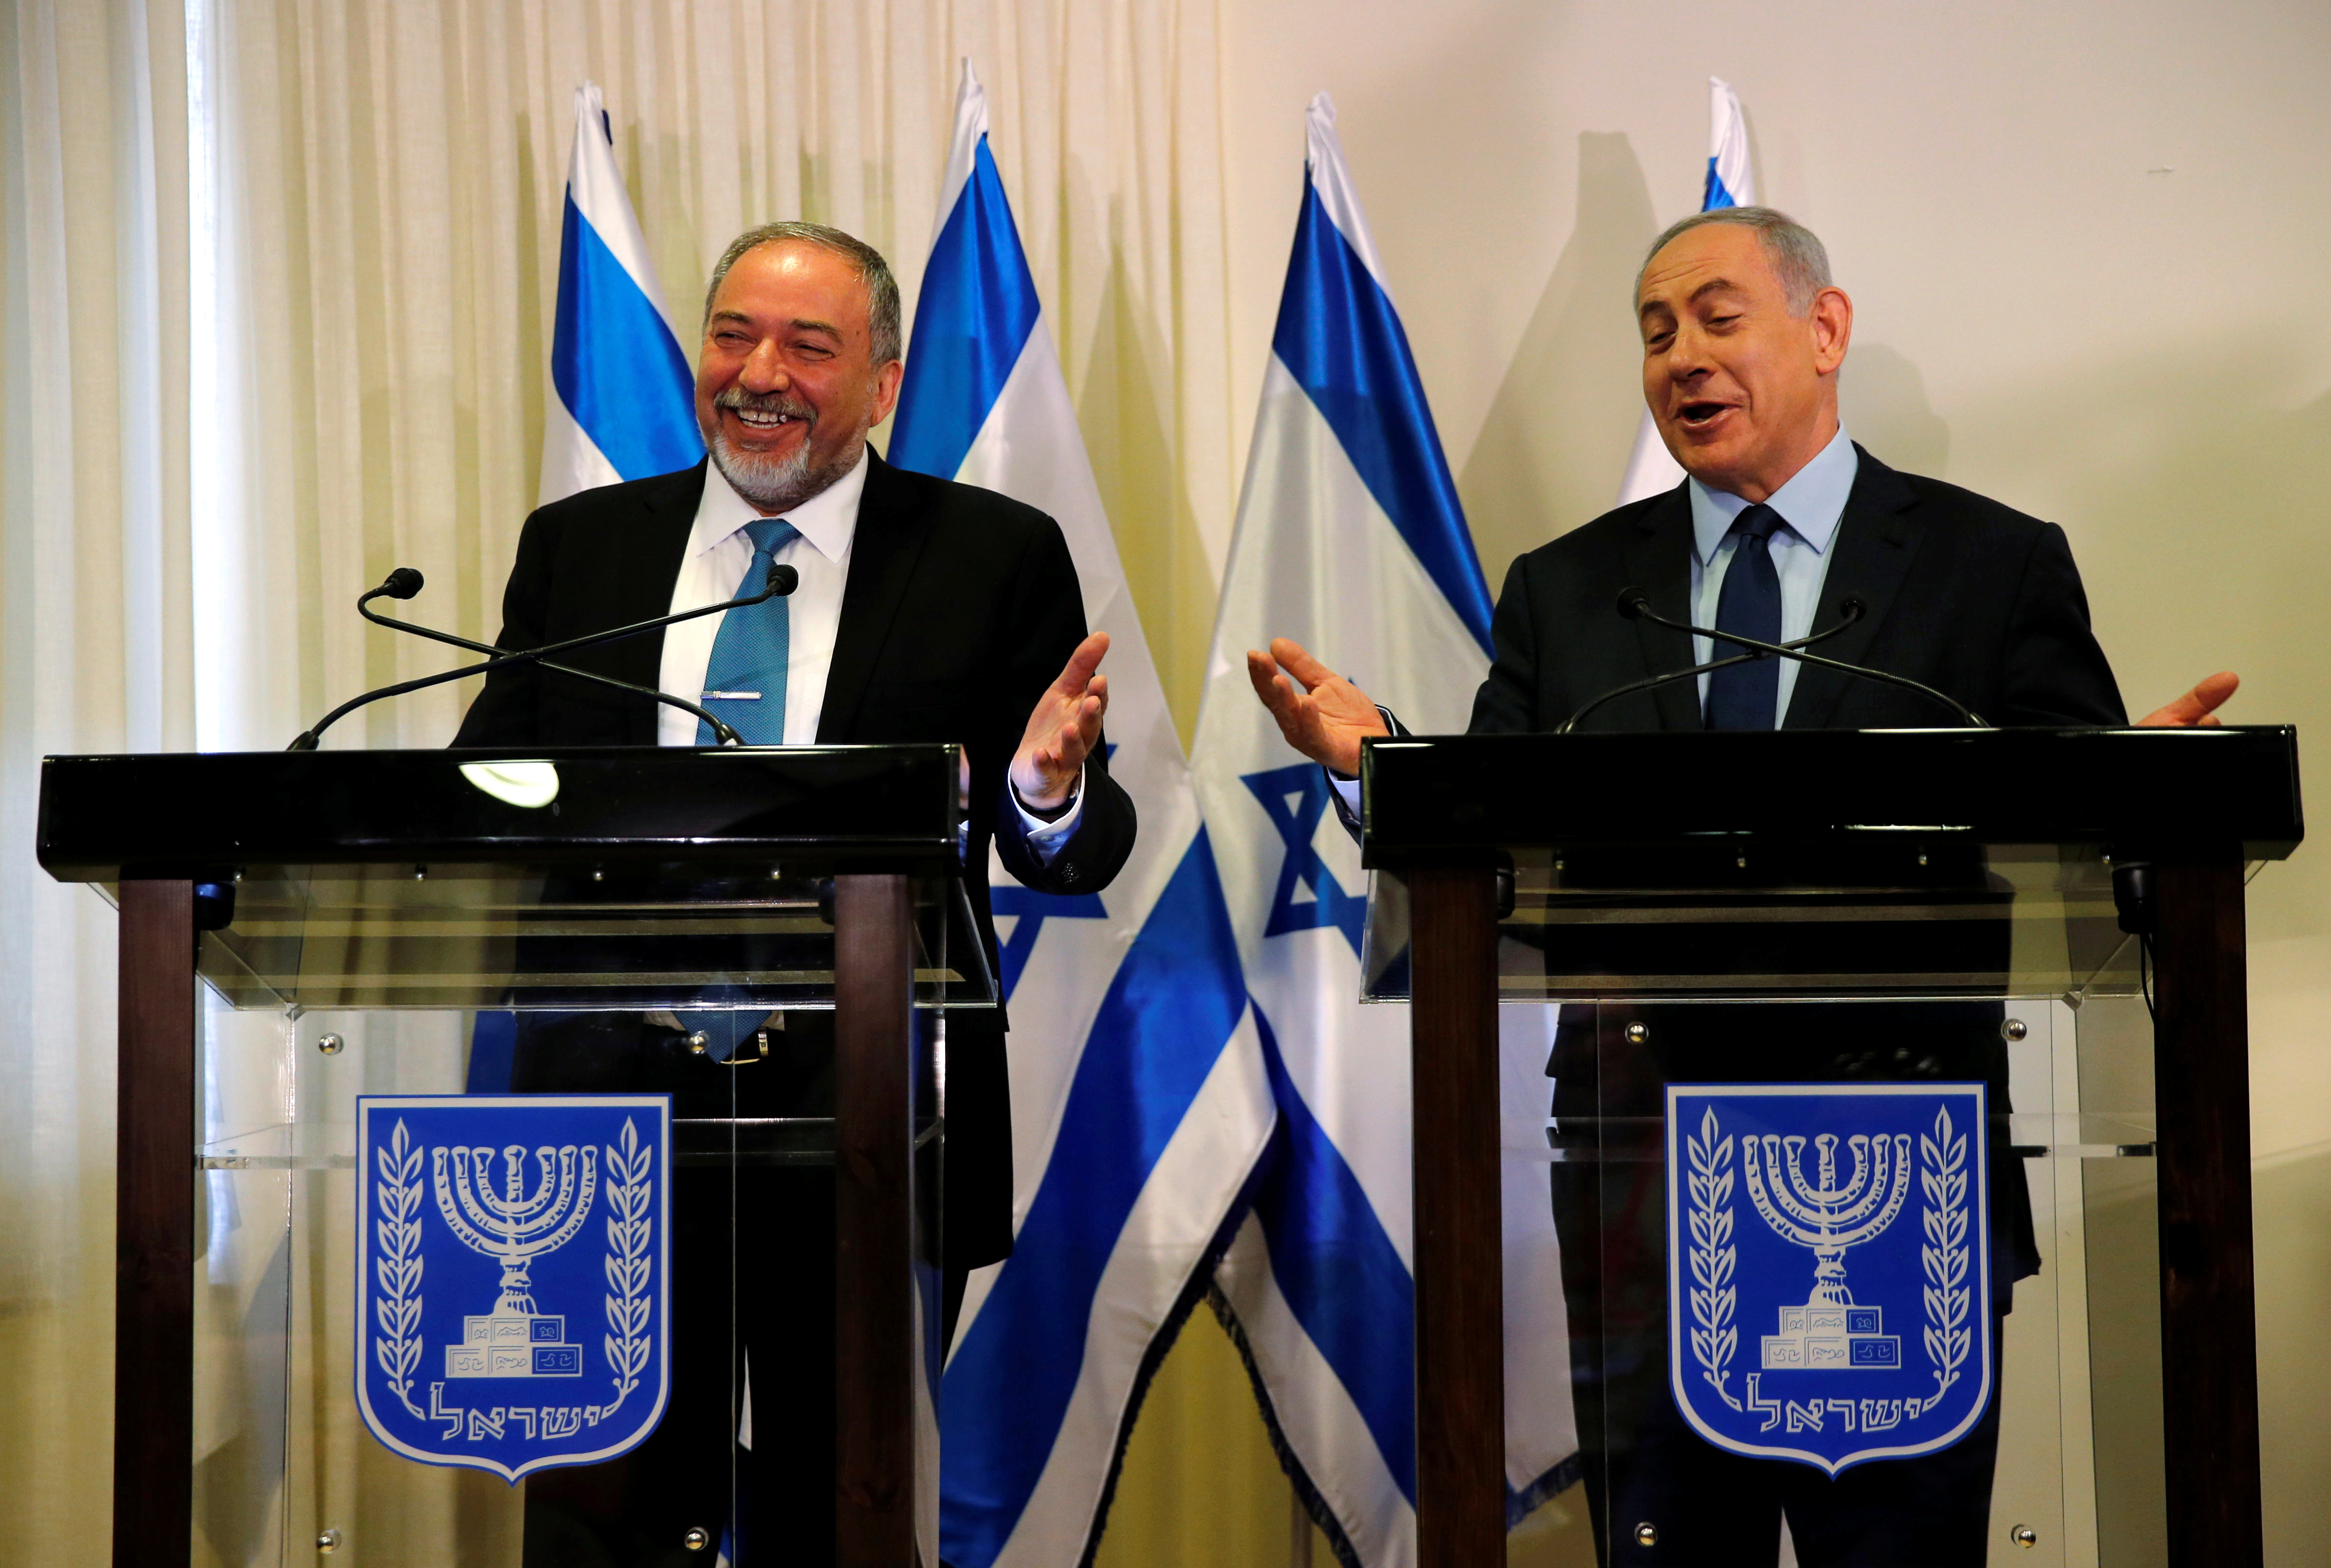 Avigdor Lieberman, head of far-right Yisrael Beitenu party, (L) and Israeli Prime Minister Benjamin Netanyahu deliver statements to the media after signing a coalition deal to broaden the government's parliamentary majority, at the Knesset, the Israe...